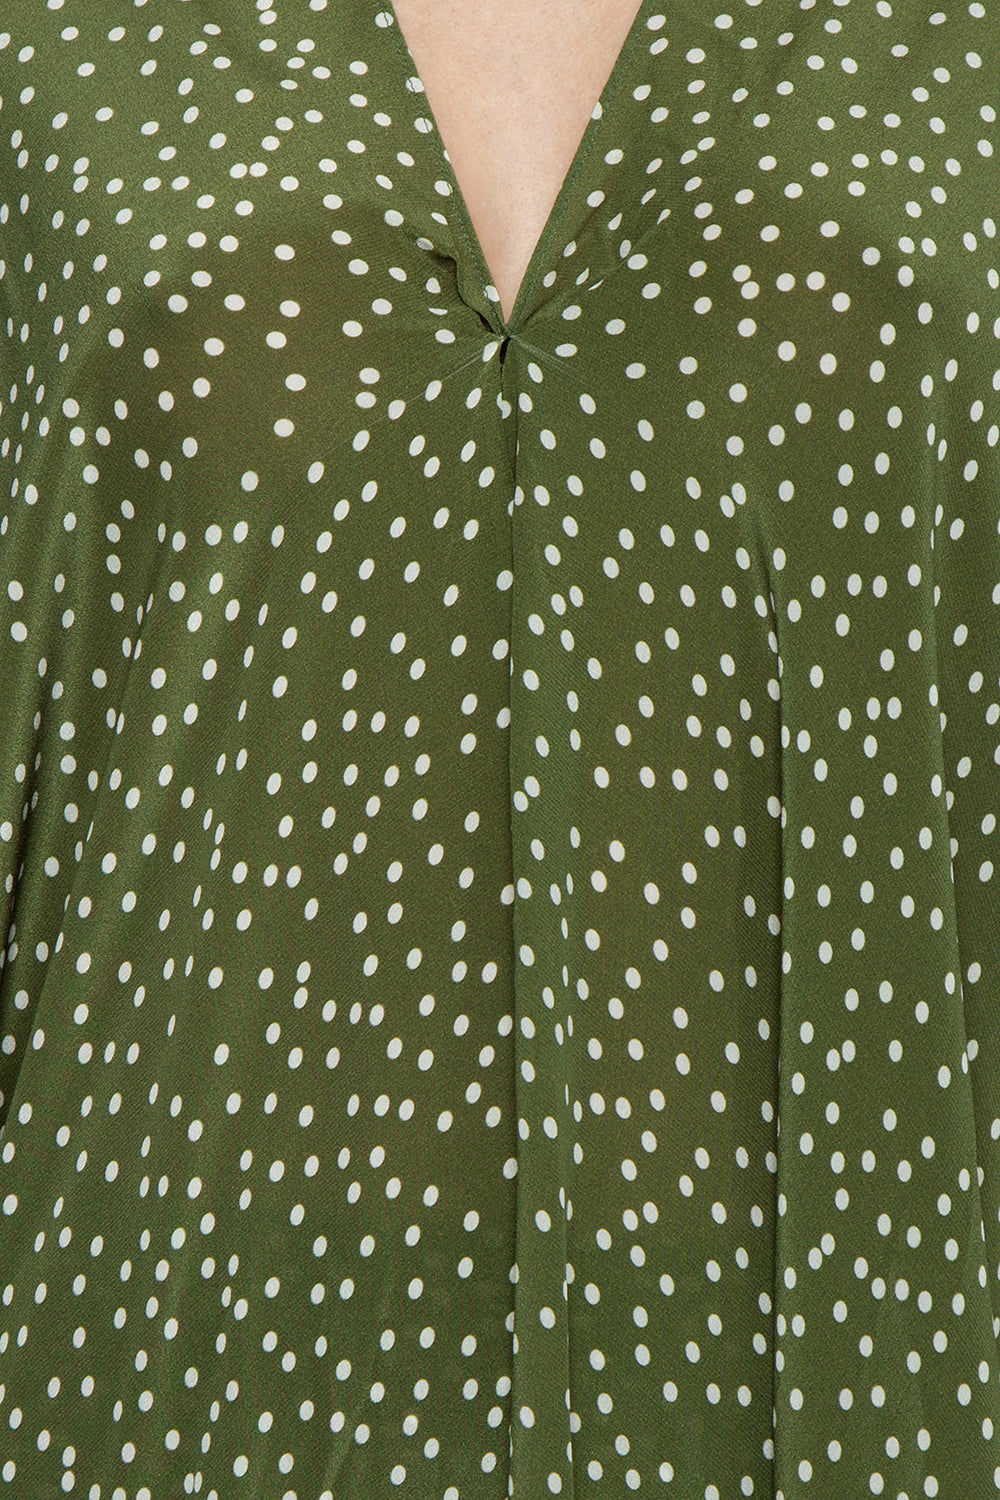 ADRIANA DEGREAS Silk Crepe De Chine Long Kaftan - Mille Punti Green Dot Print Cover Up | Mille Punti Green Dot Print| Adriana Degreas Silk Crepe De Chine Long Kaftan - Mille Punti Green Dot Print Long kaftan V neckline  Flowy sleeves  Cut out back detail  Detail View